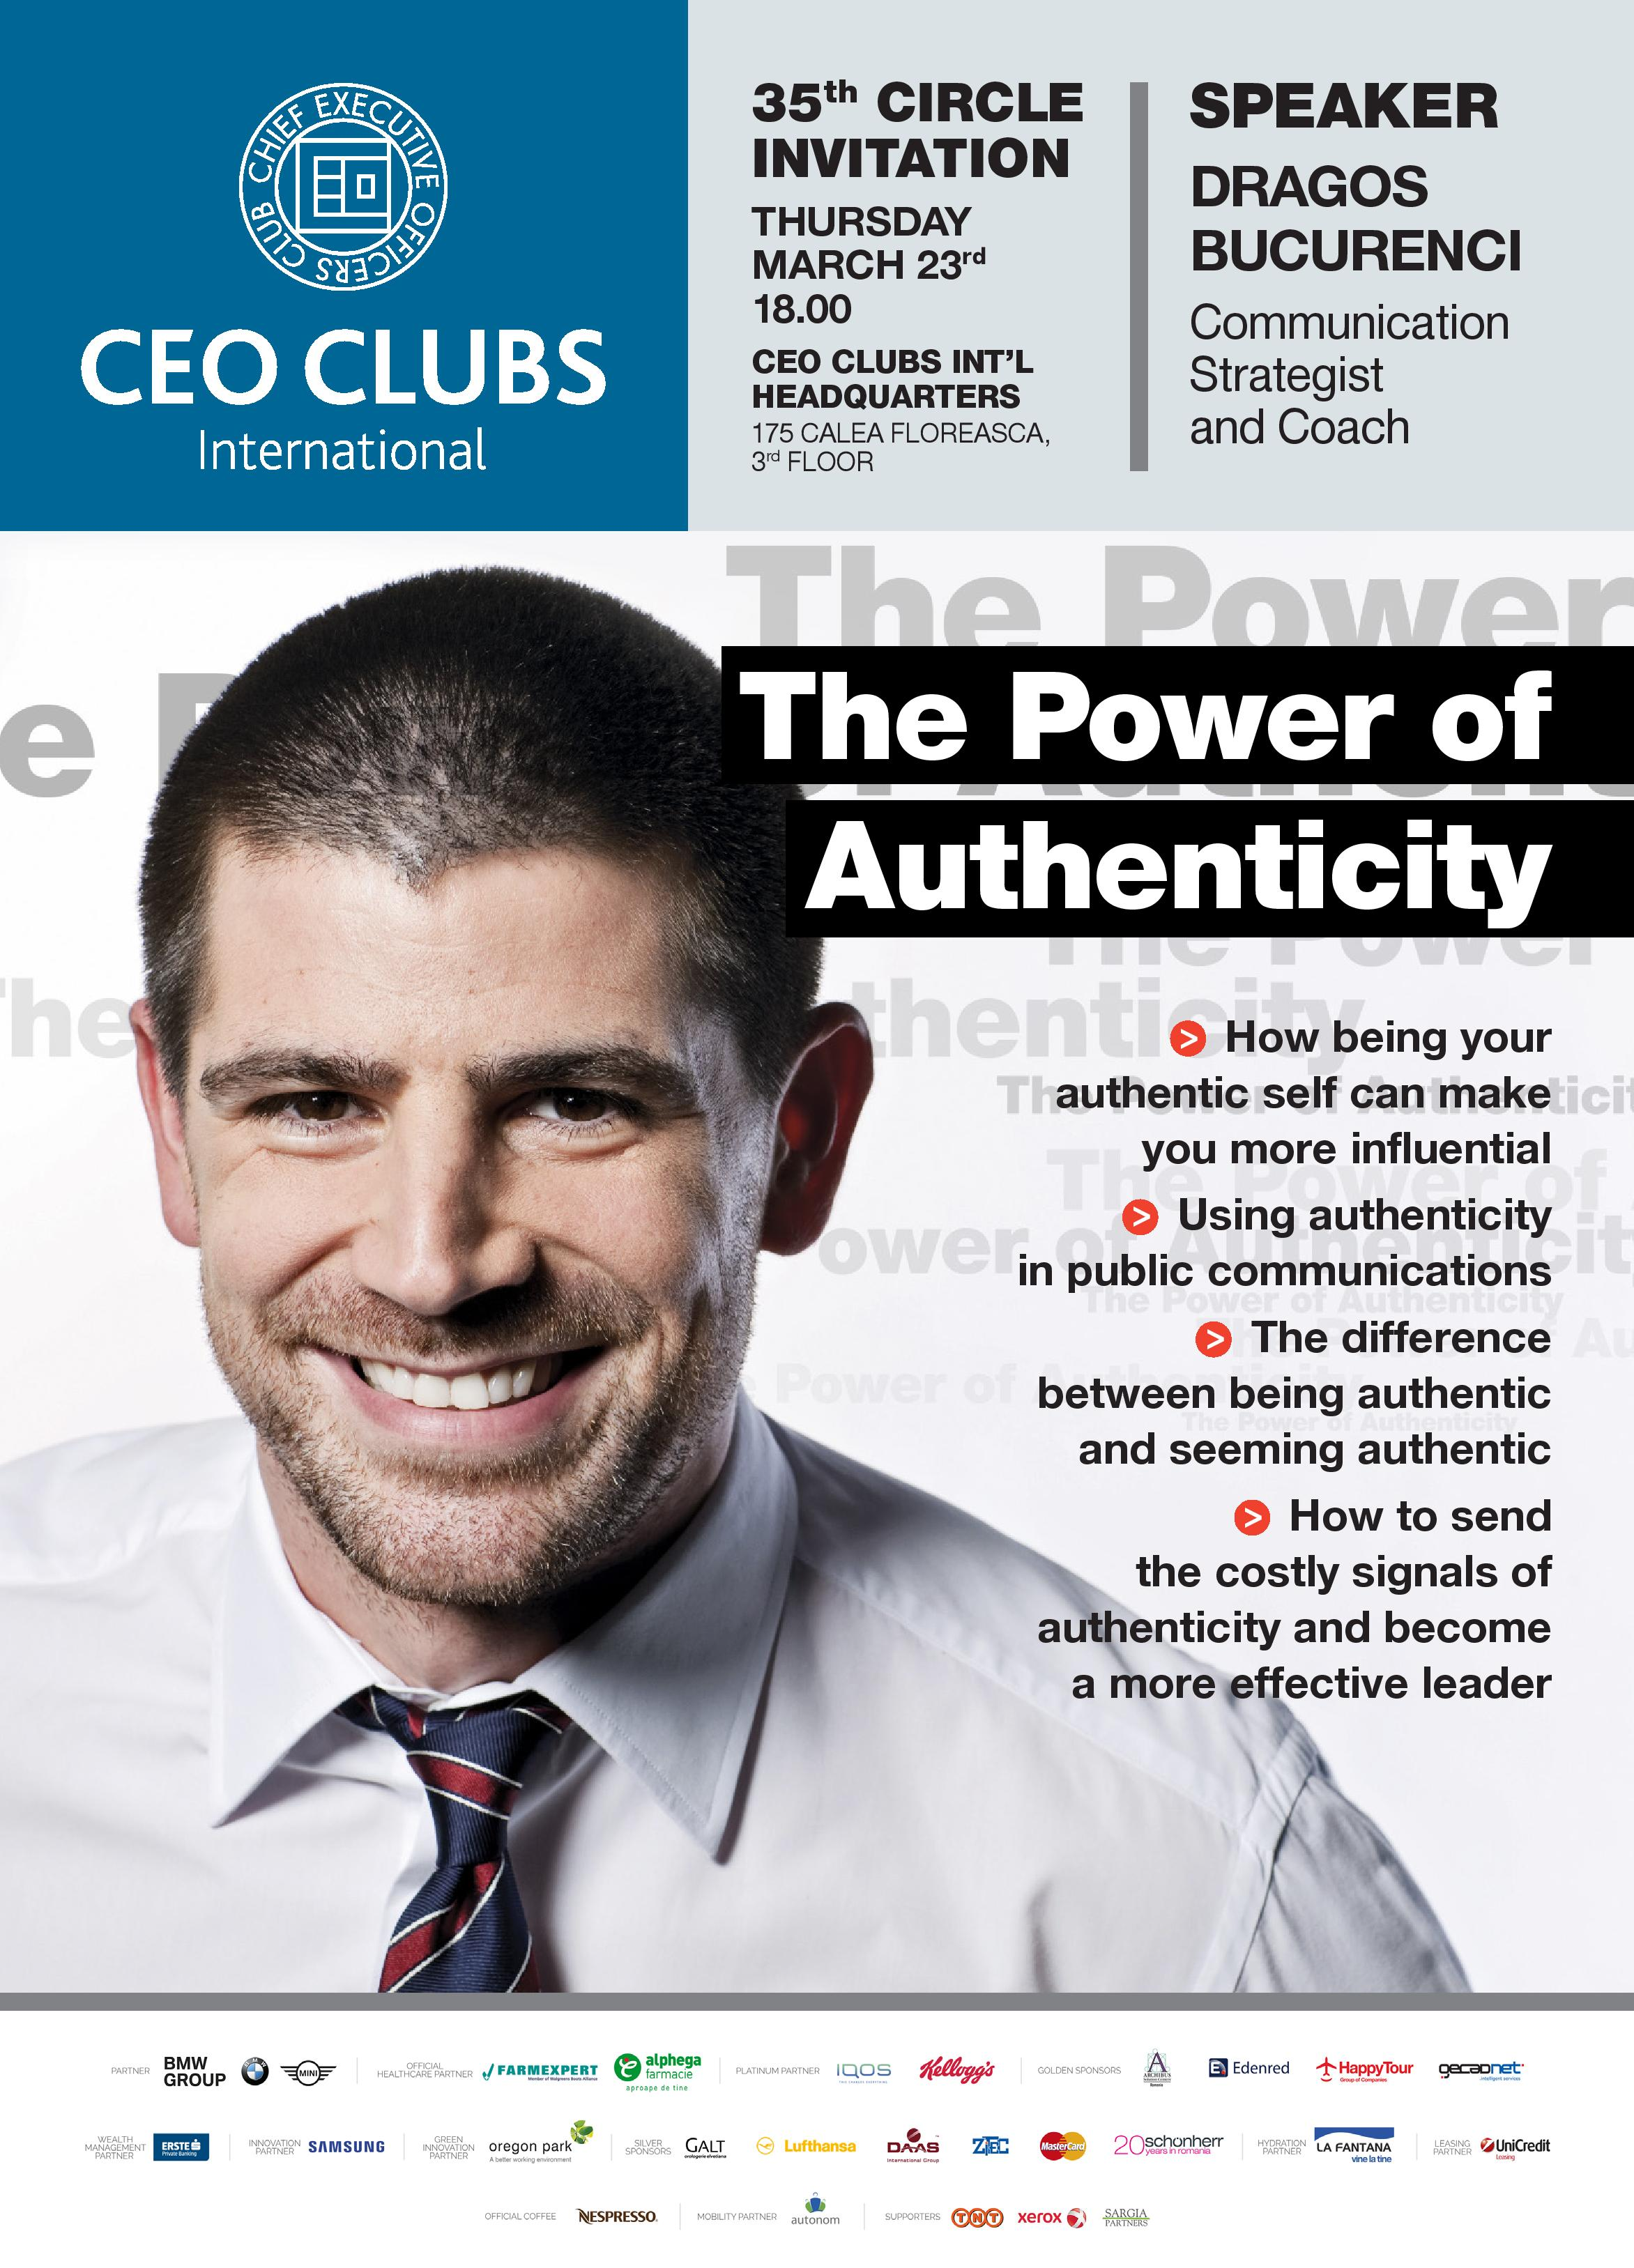 The 35th Circle: The Power of Authenticity